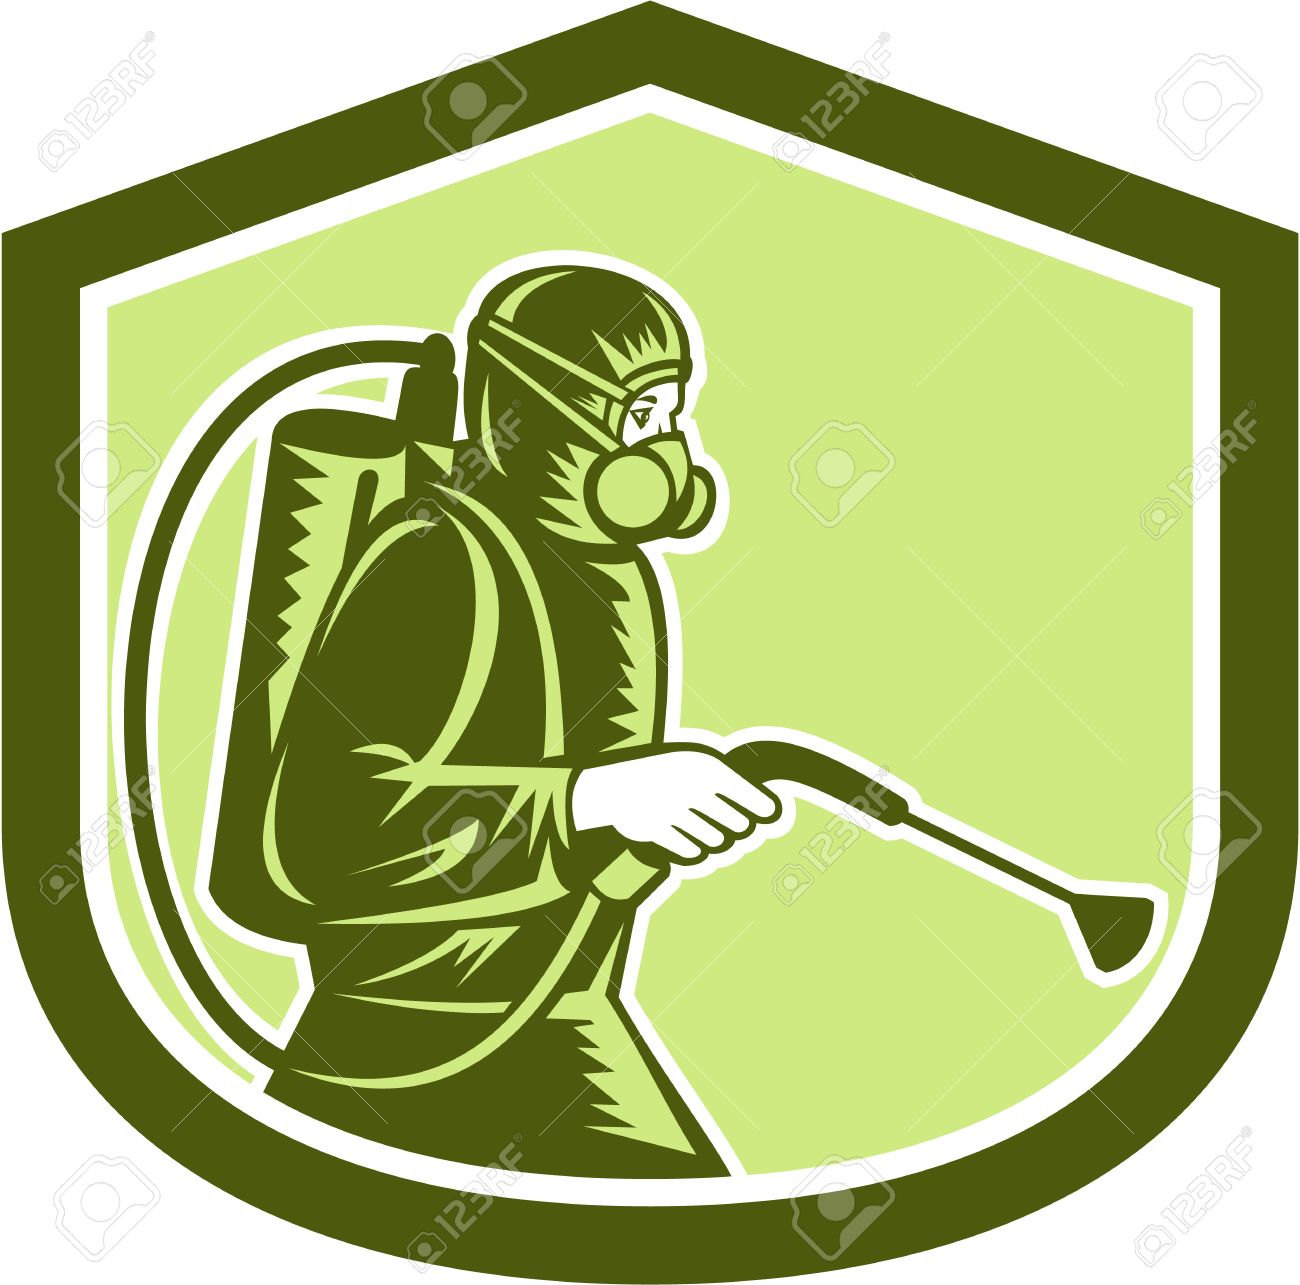 Illustration of pest control exterminator spraying side view set inside shield crest on isolated background done in retro style. - 28594150